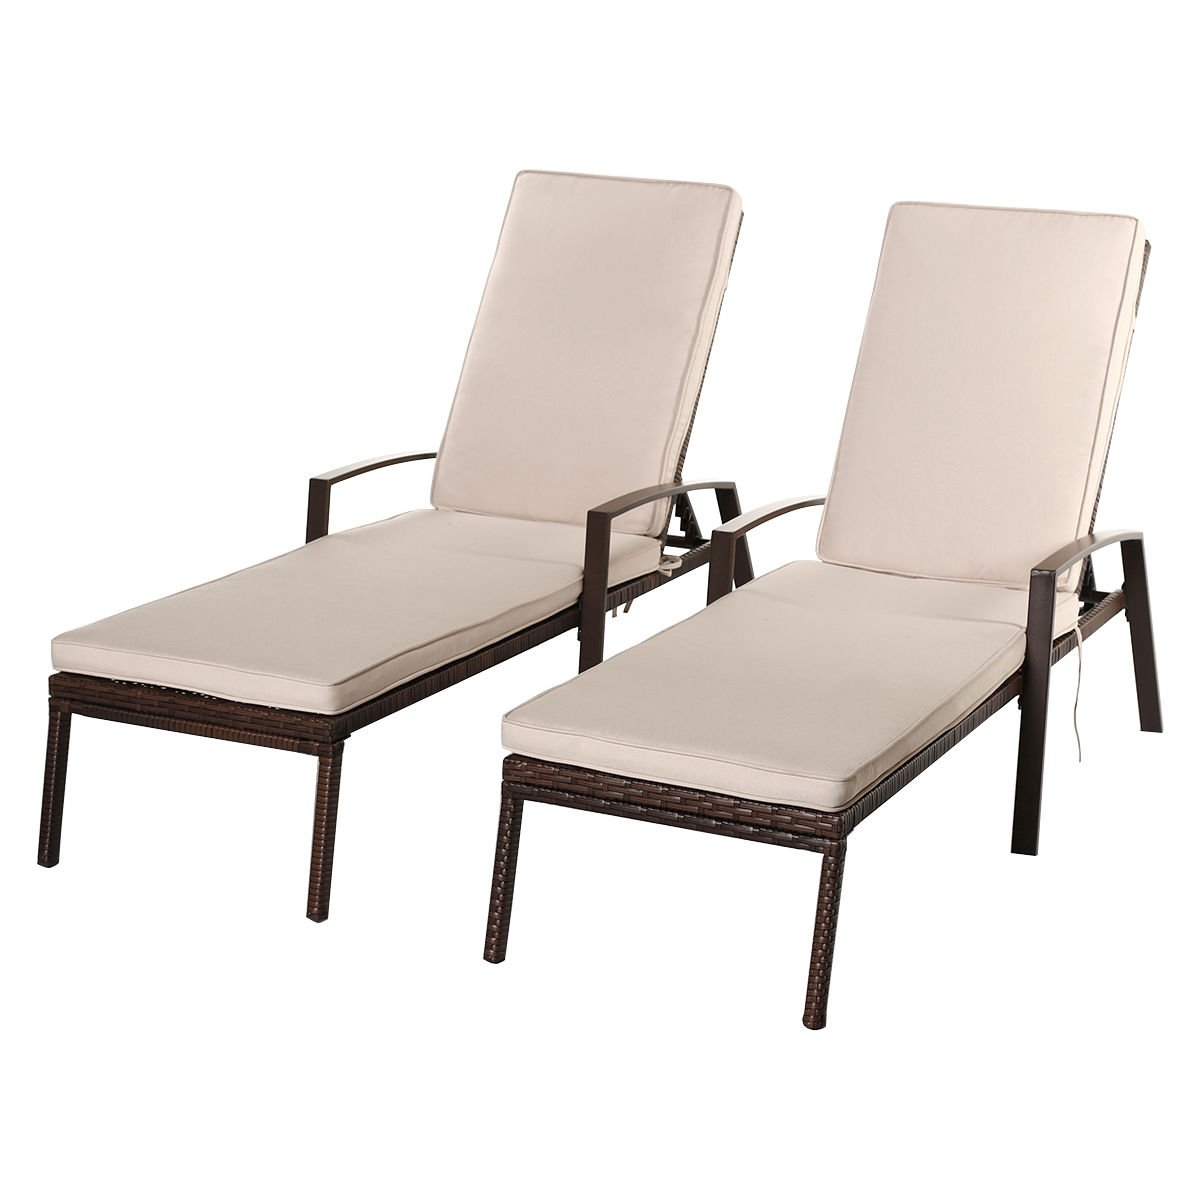 Tangkula Wicker Chaise Lounge Outdoor Patio Adjustable Lounger Chair Set of 2